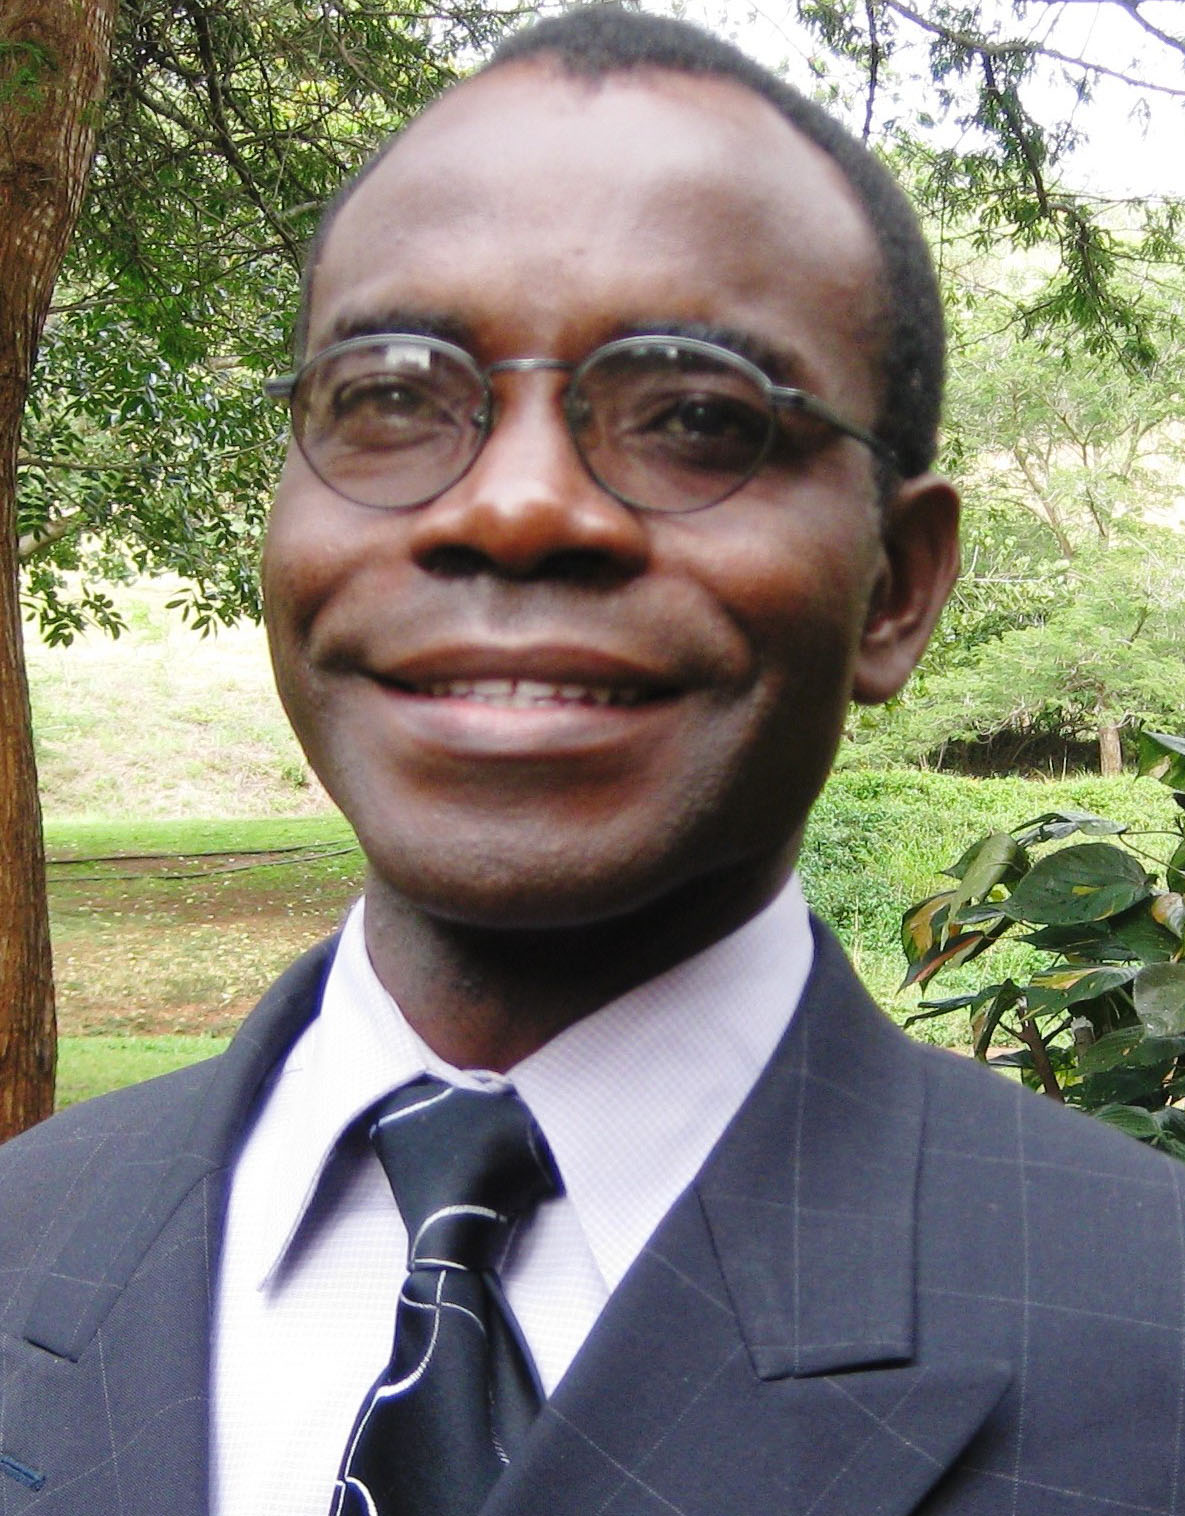 Rev. Daniel Mhone is co-superintendent of the Malawi Provisional Conference of The United Methodist Church.